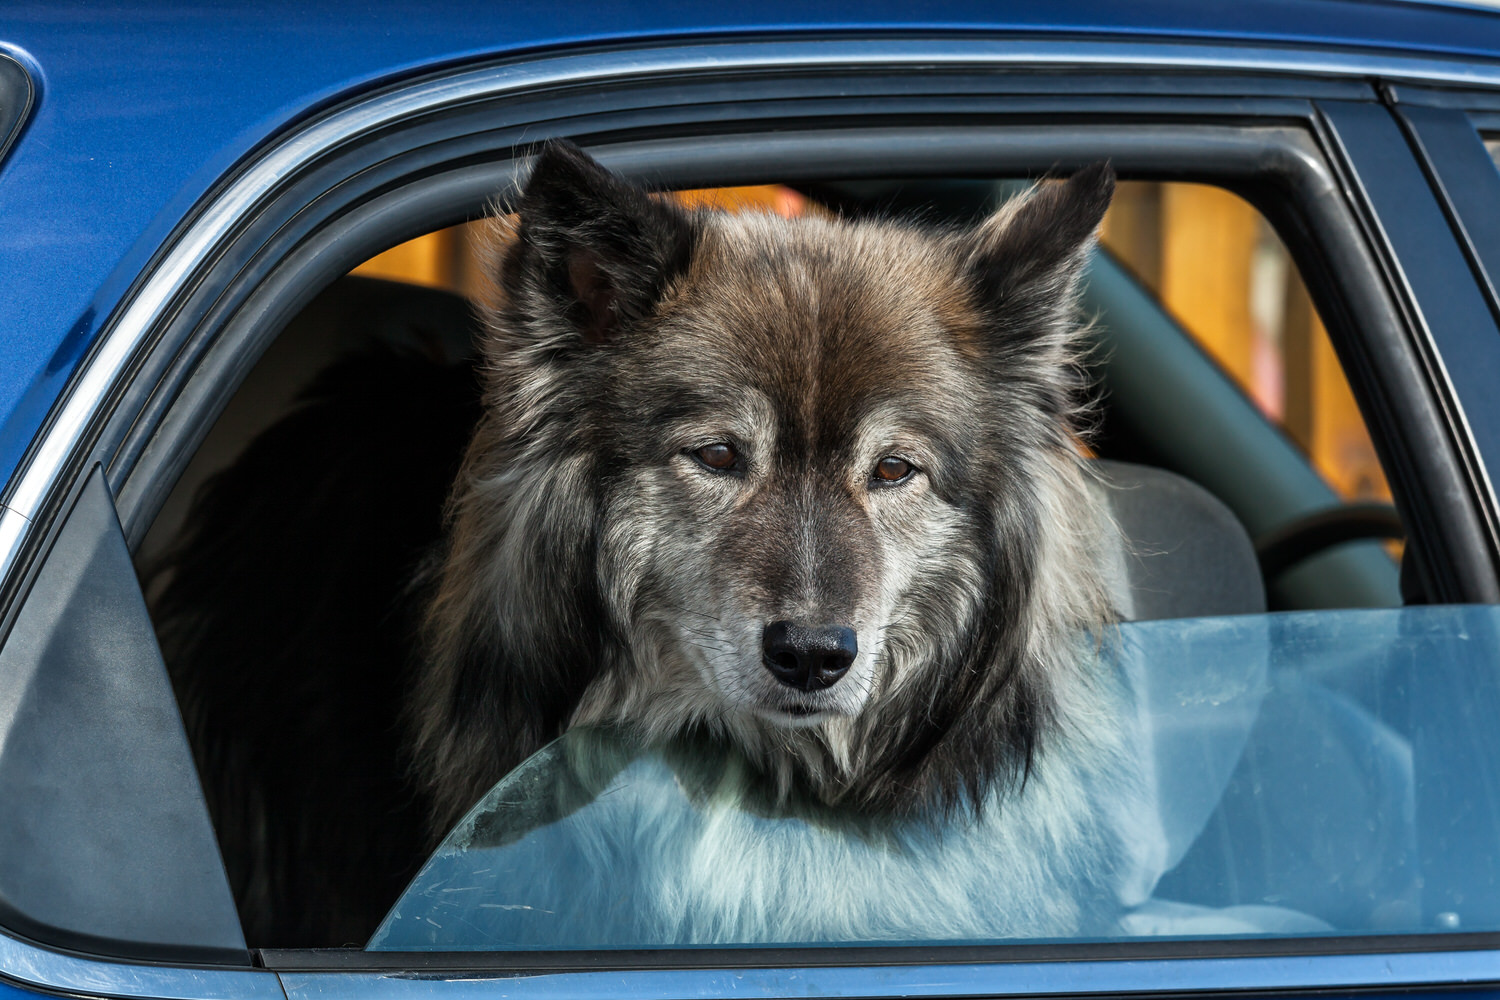 A calm and    friendly dog    pokes its head through a car window to greet passers by in the seaside town of    Húsavik    in    North Iceland   .